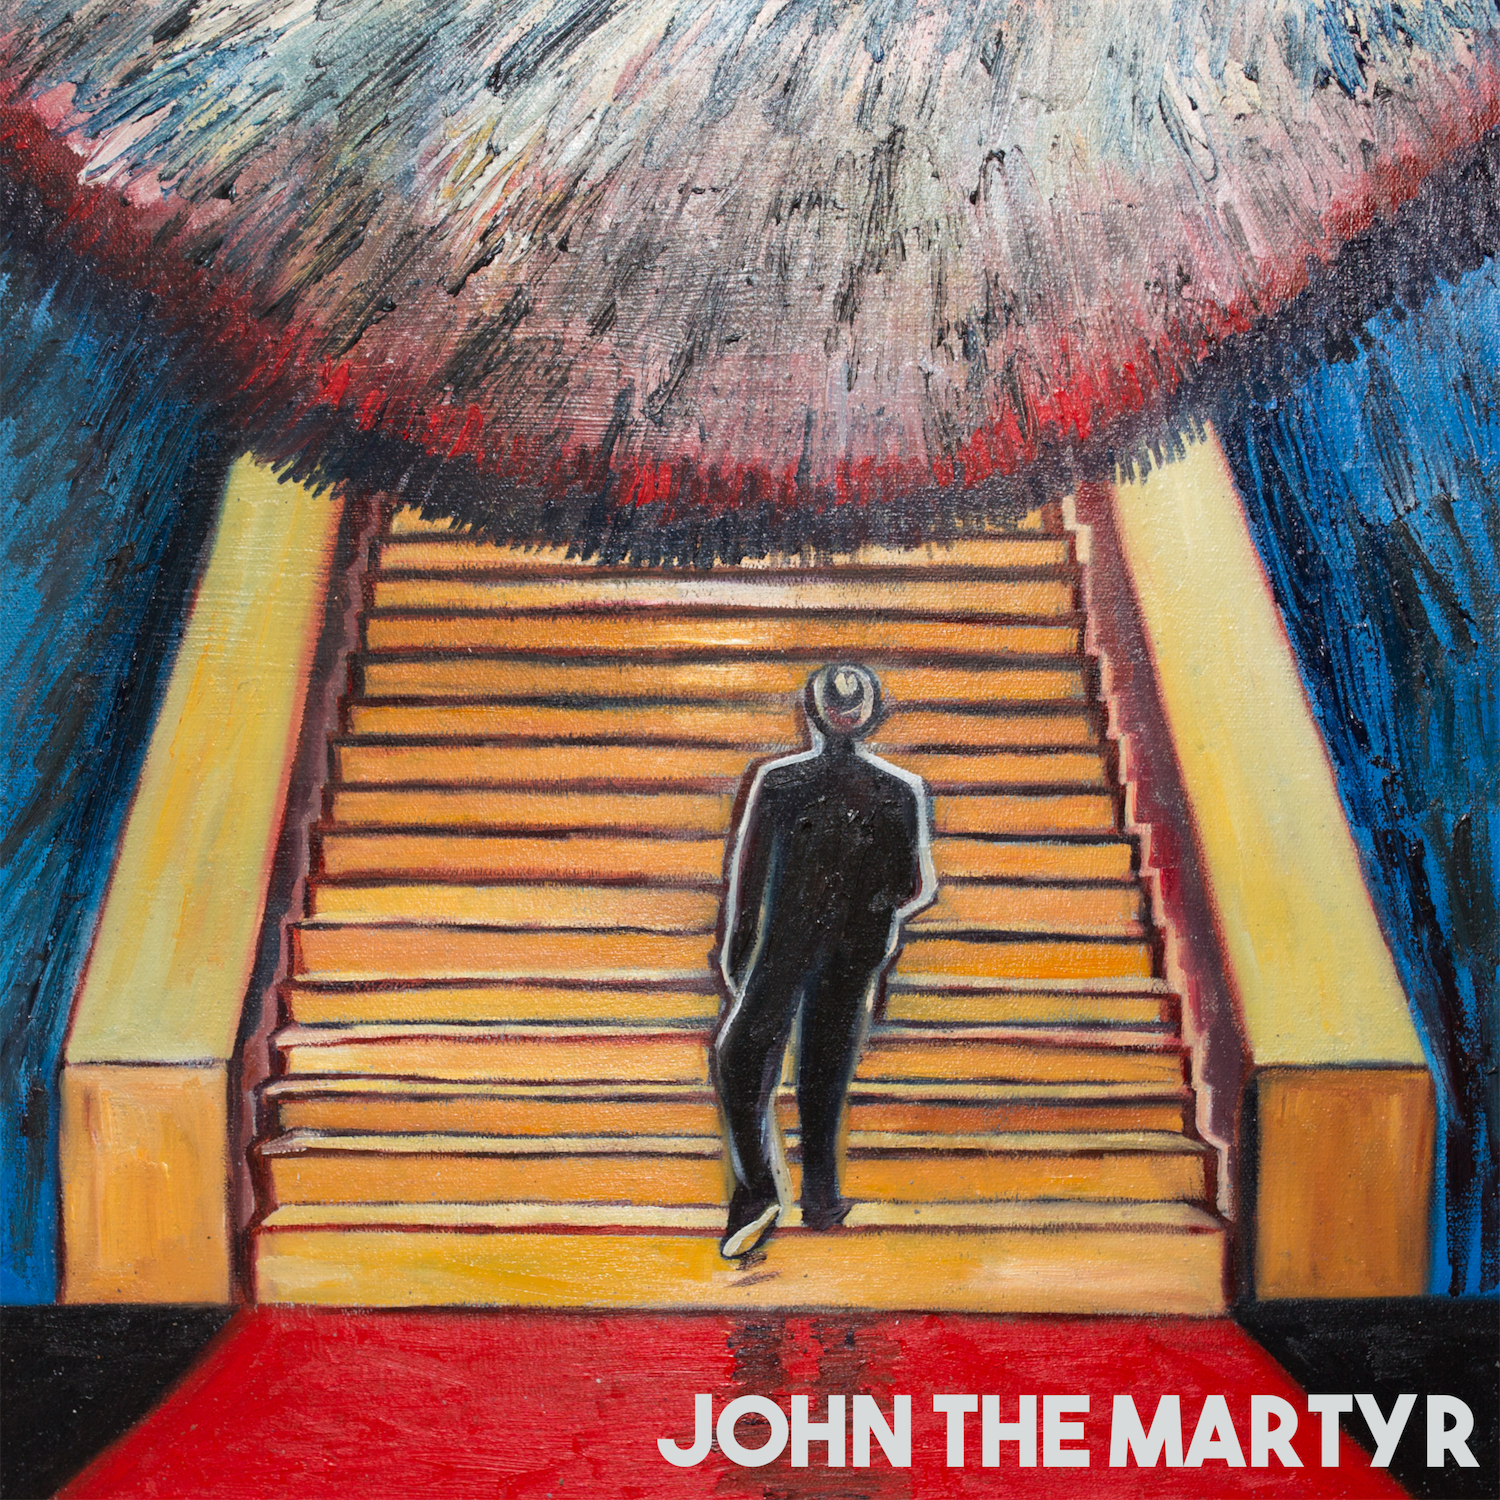 John The Martyr debt LP available!